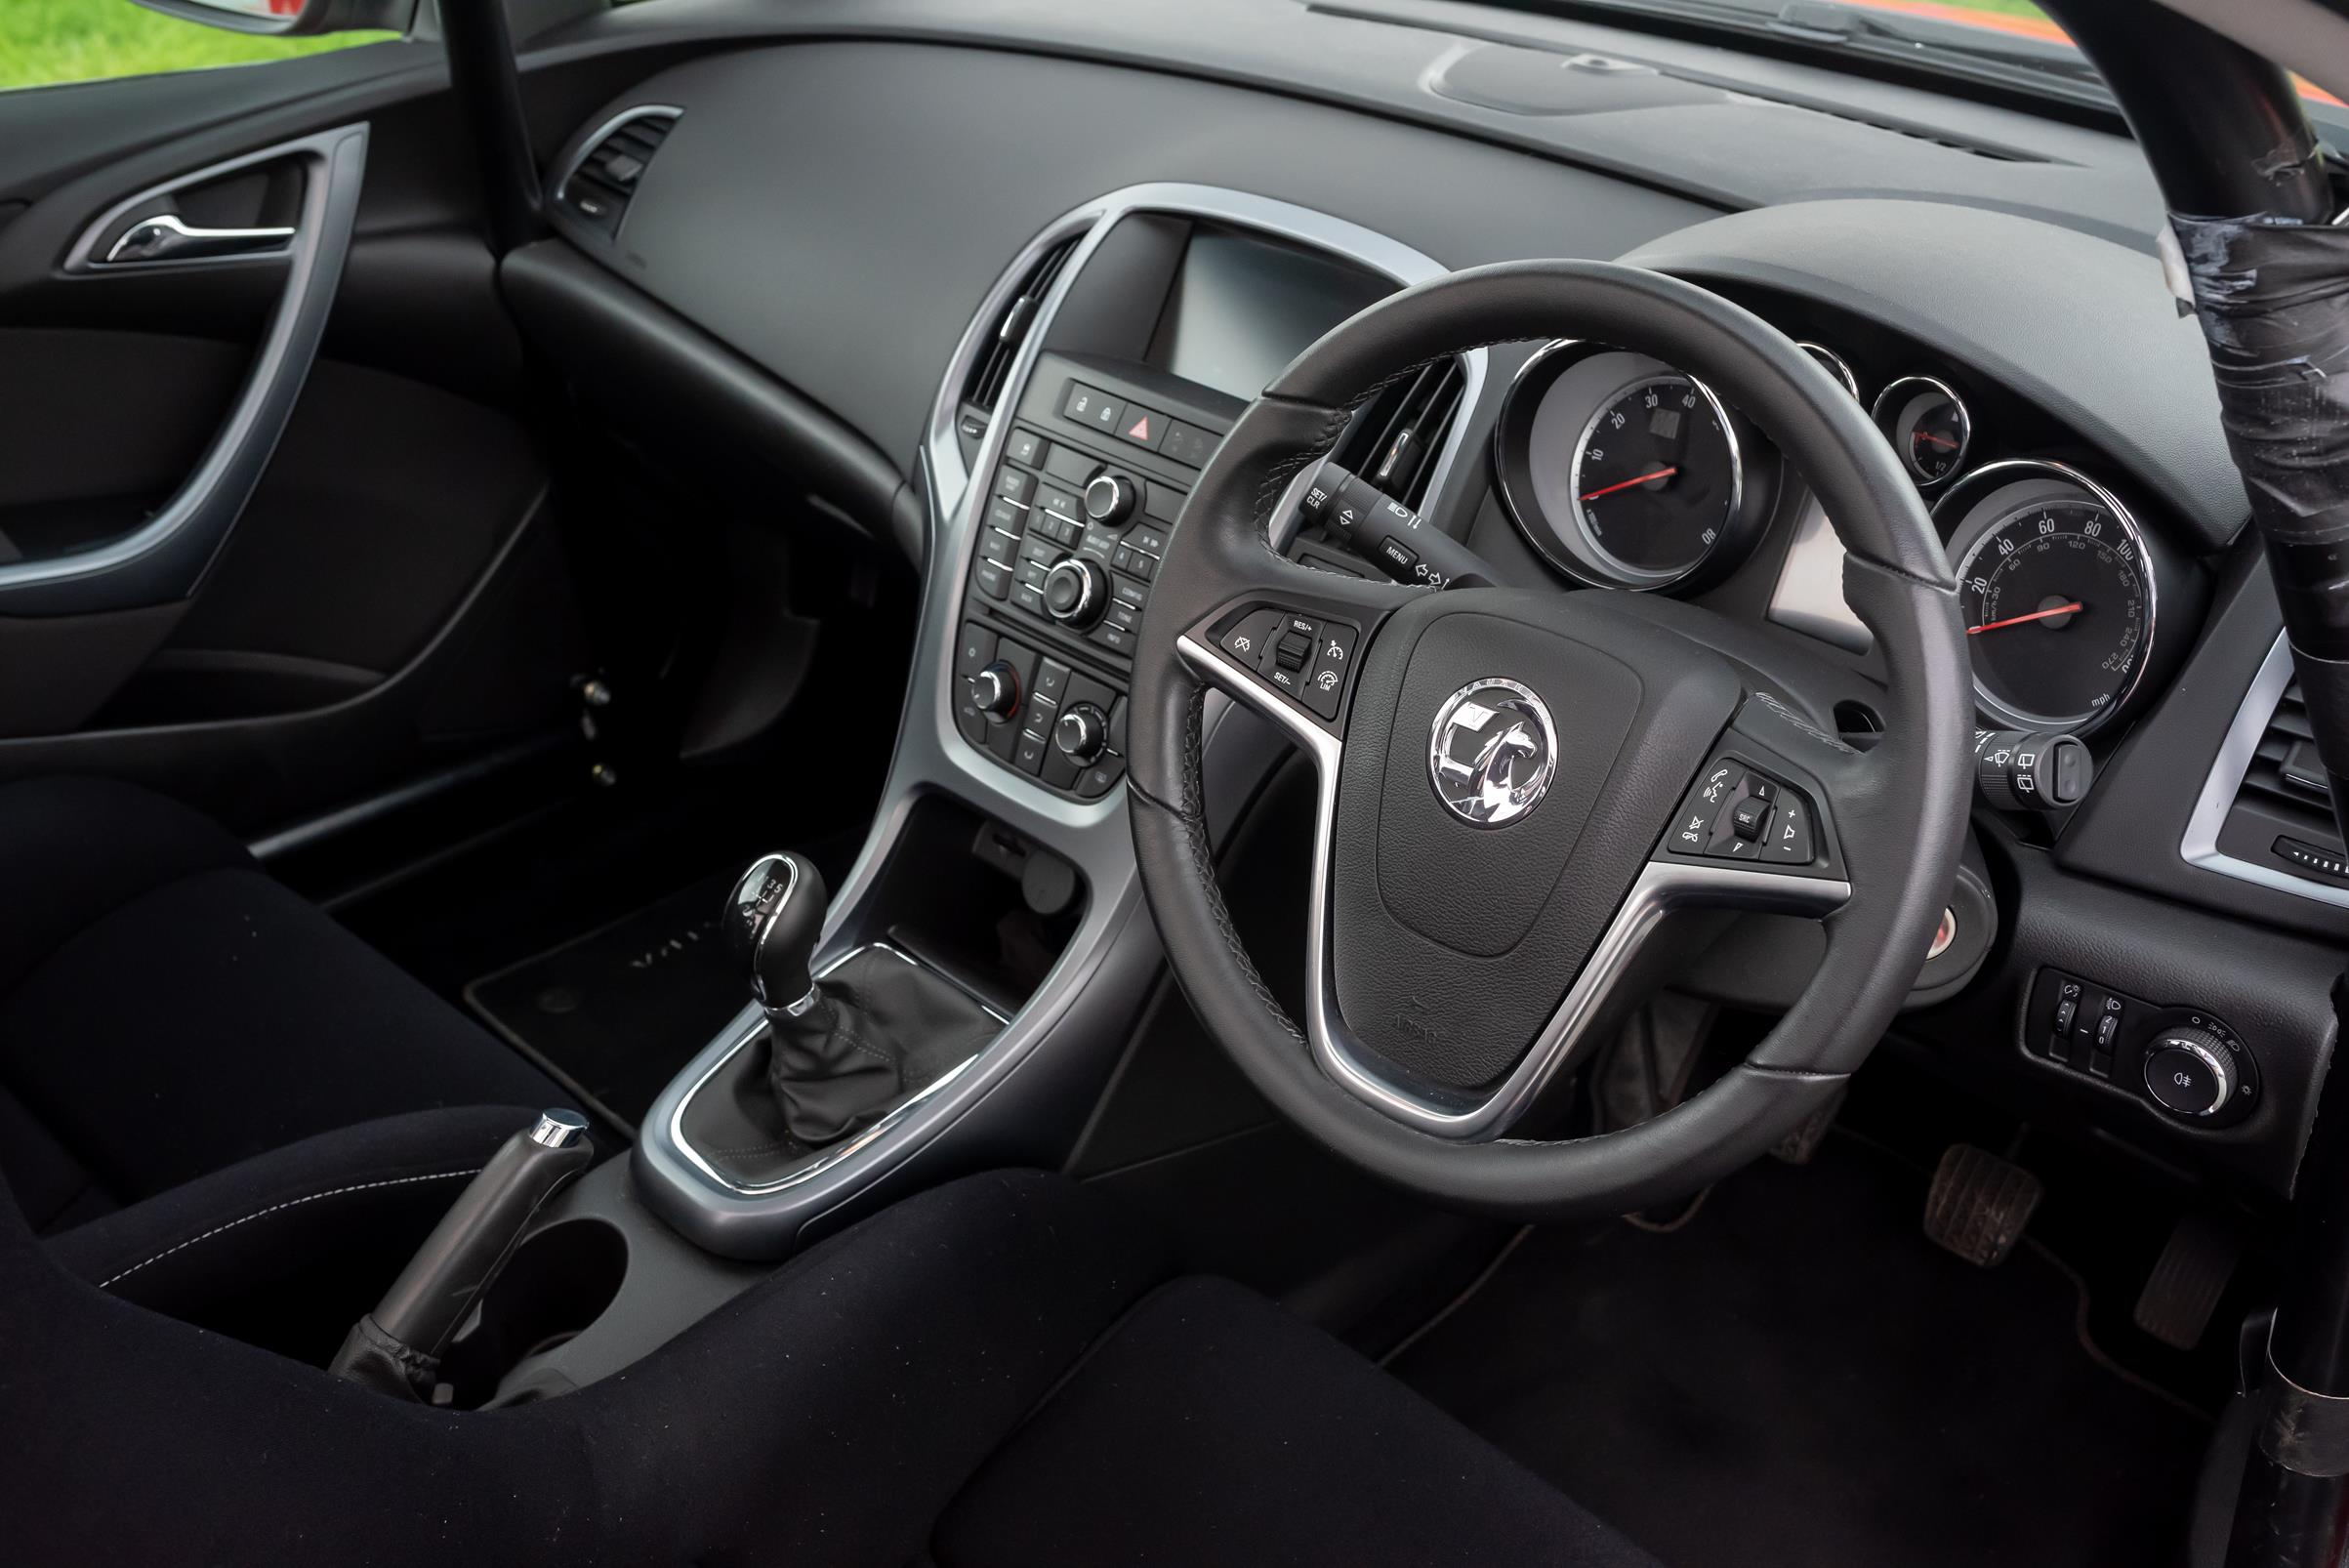 Vauxhall-Astra-Reasonably-Priced-Car-for-sale-14